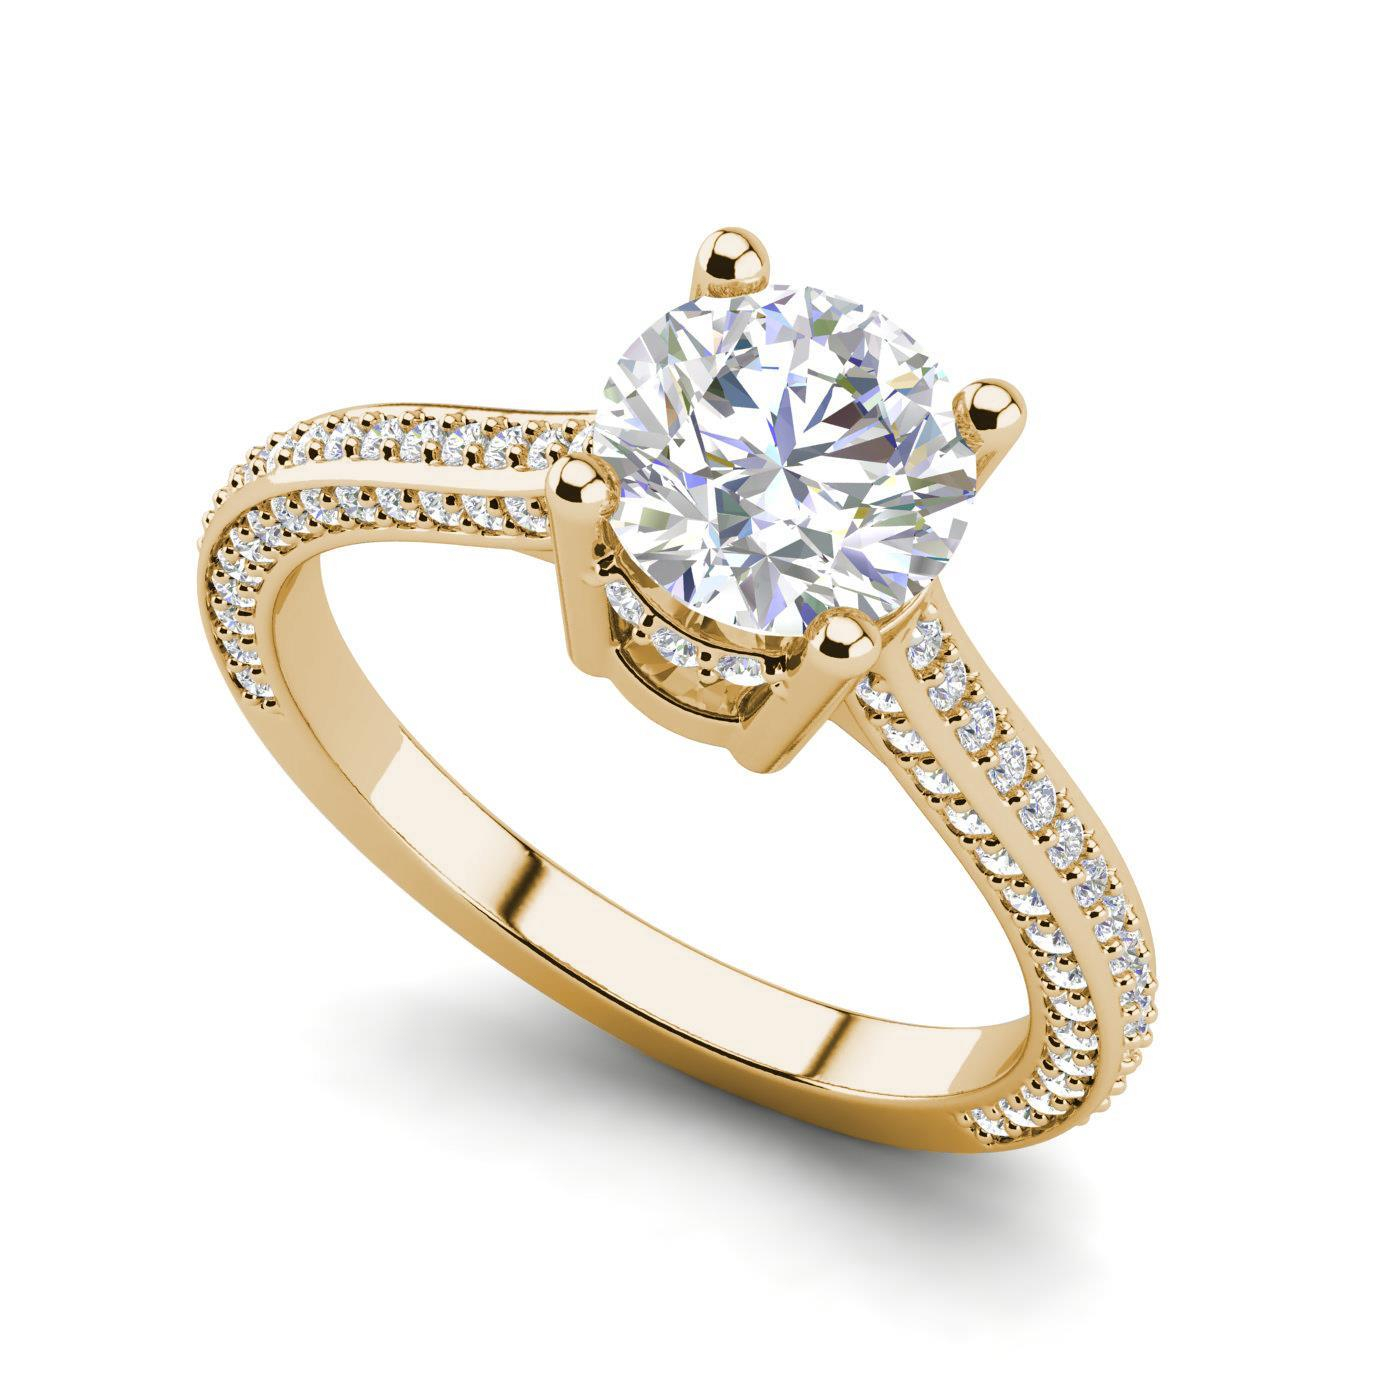 Details About Micropave 2.15 Carat Vvs2/f Round Cut Diamond Engagement Ring  Yellow Gold With Round Brilliant Diamond Micropavé Engagement Rings (Gallery 22 of 25)